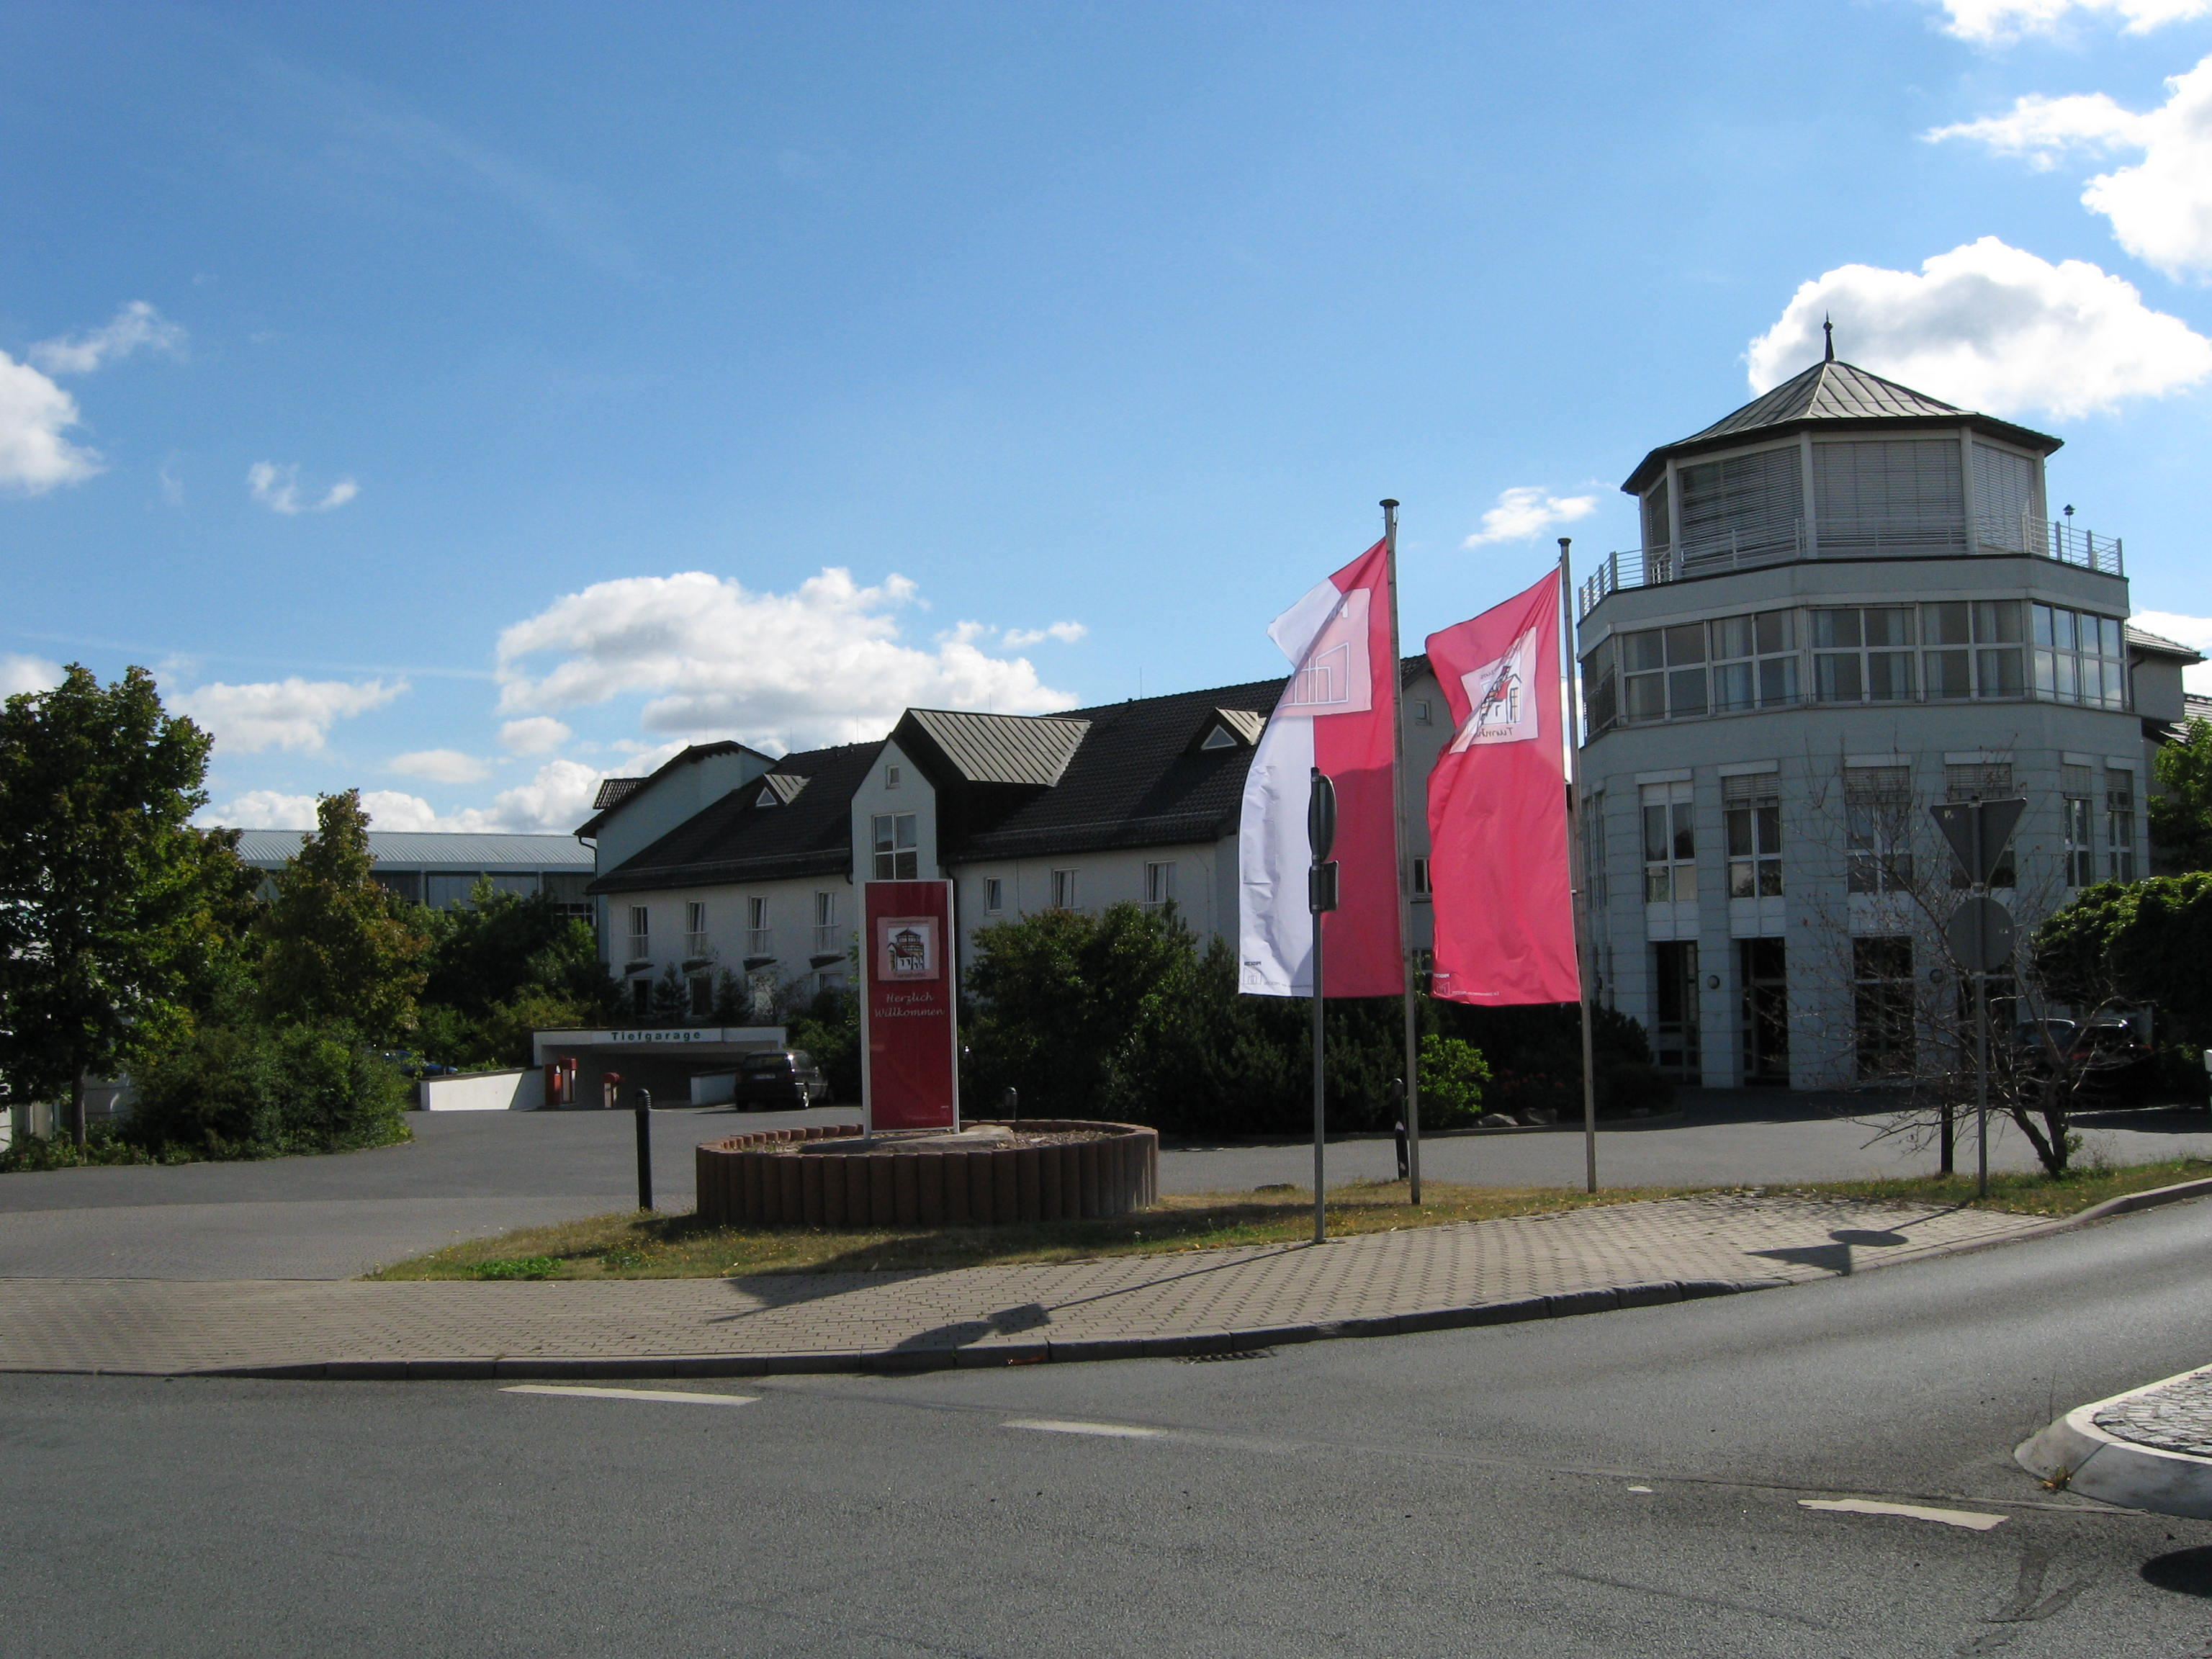 Seniorenzentrum Turmhotel